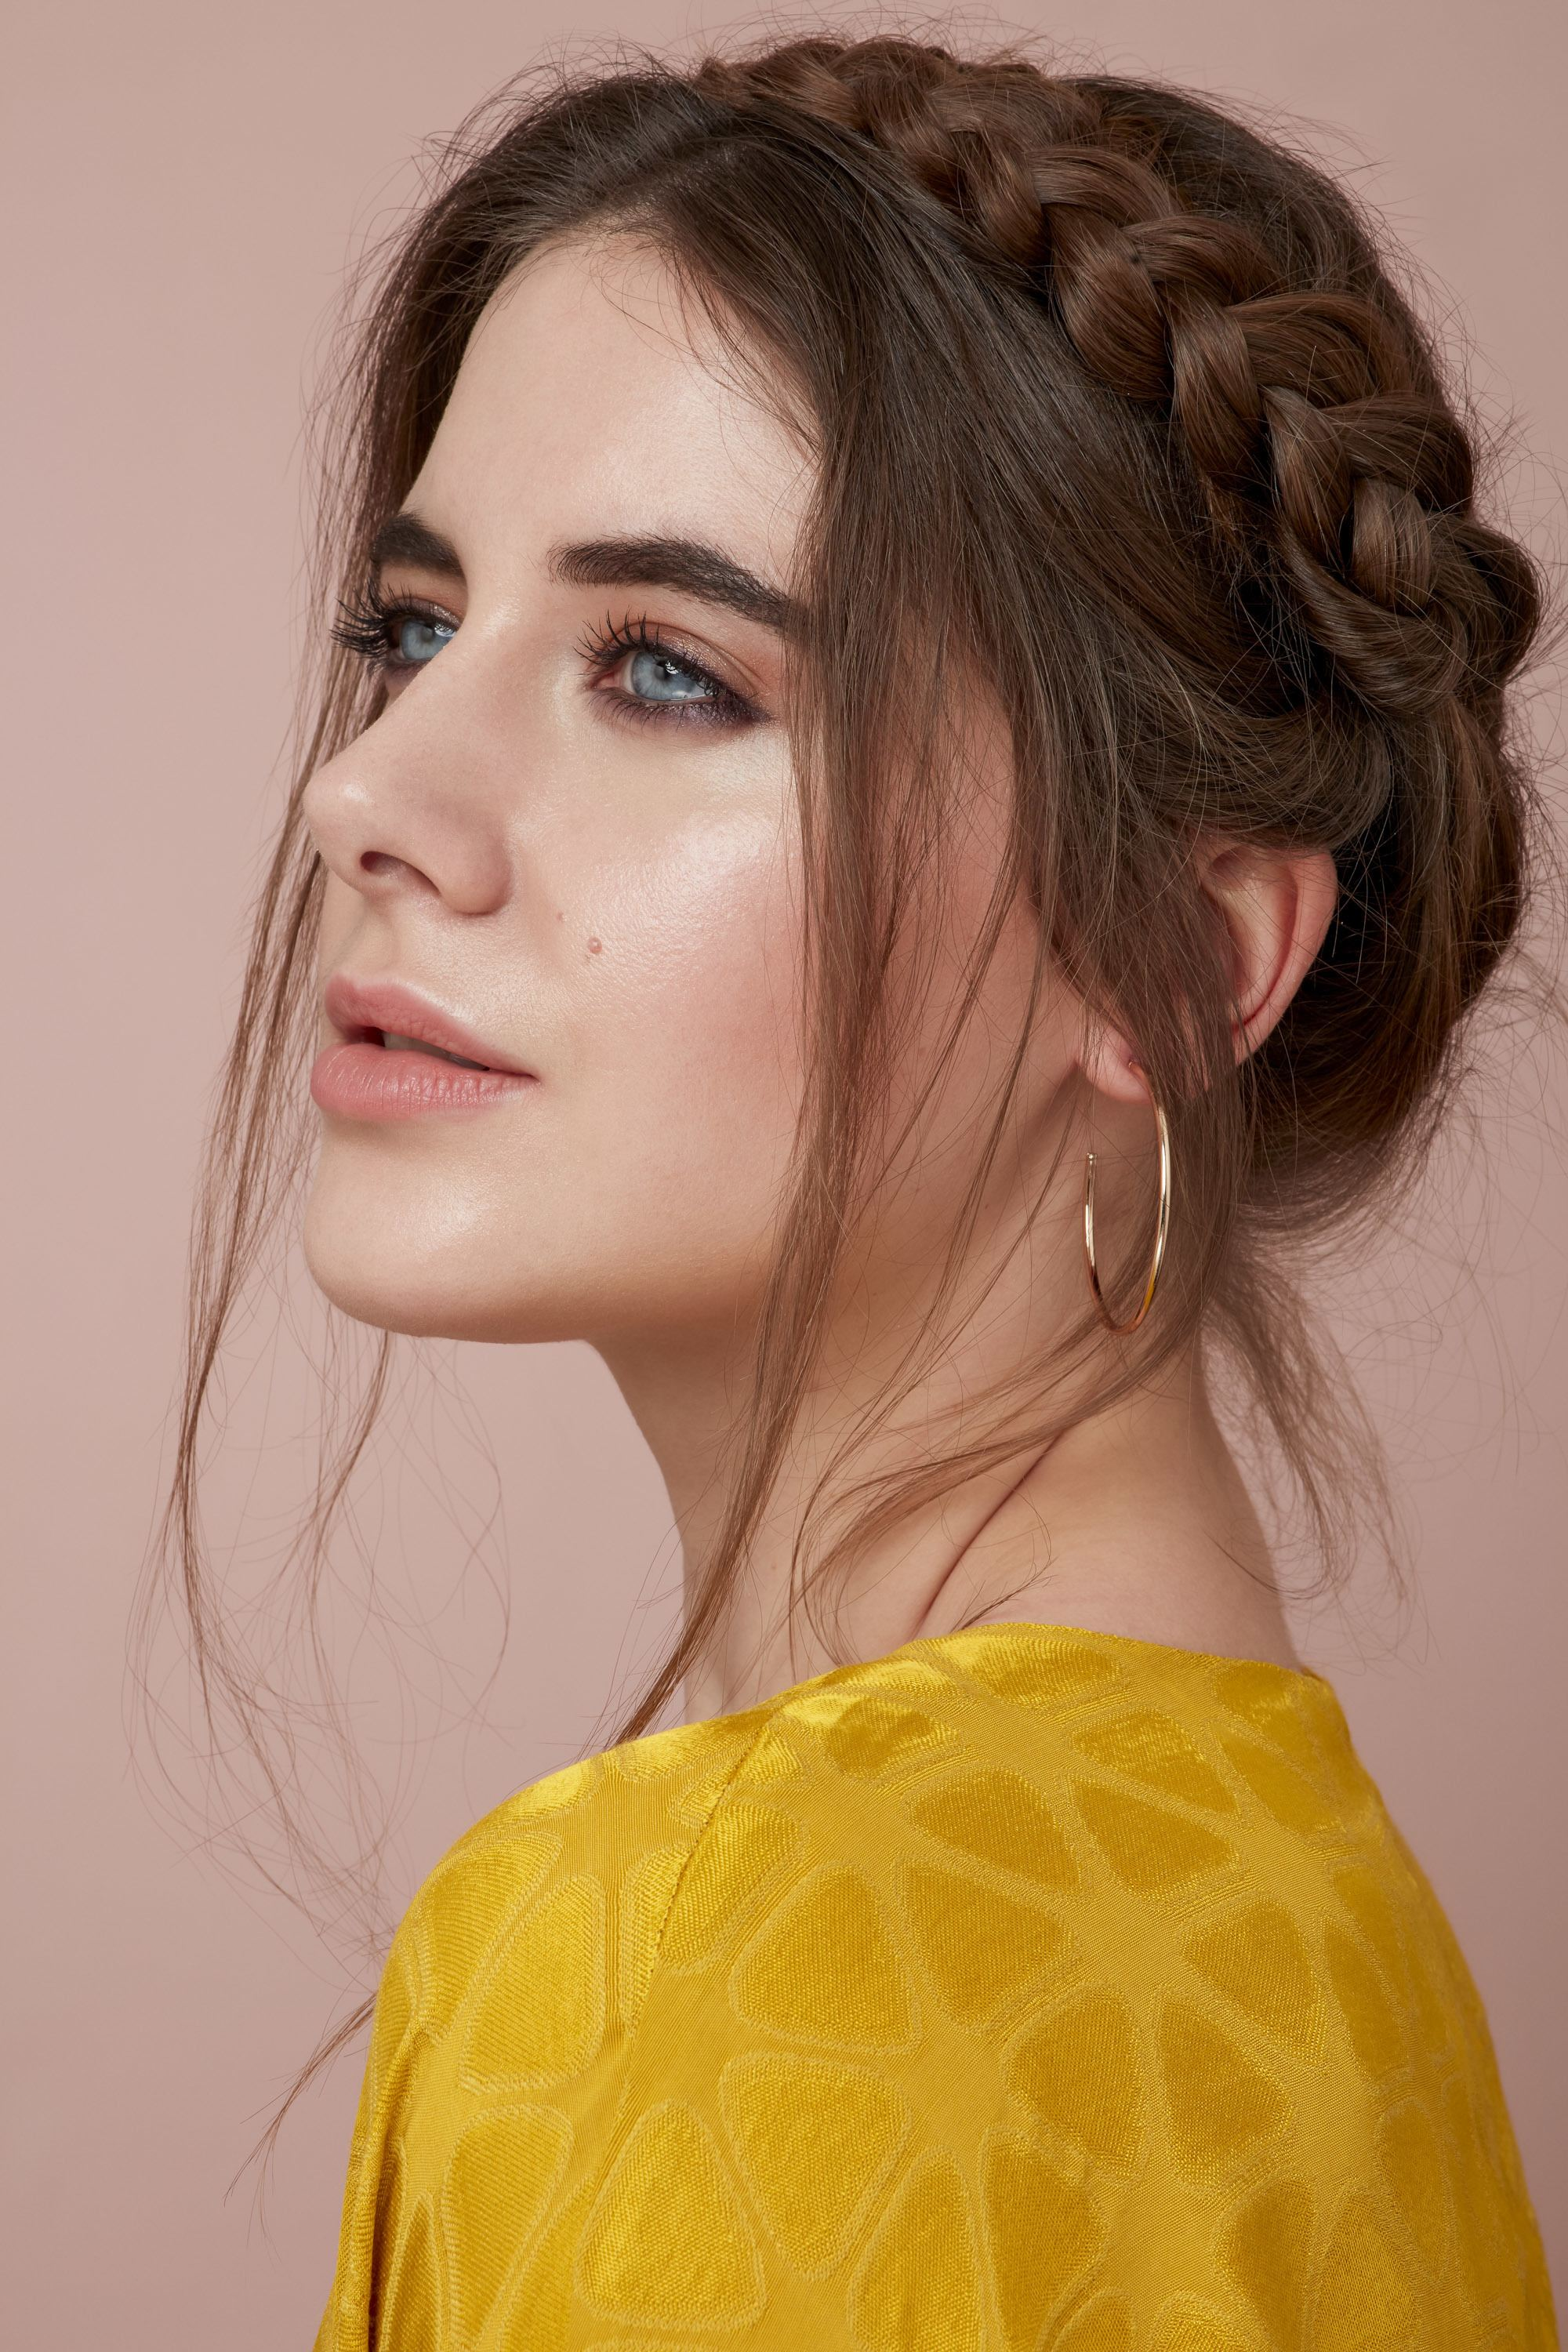 Halo milkmaid braid on brown hair